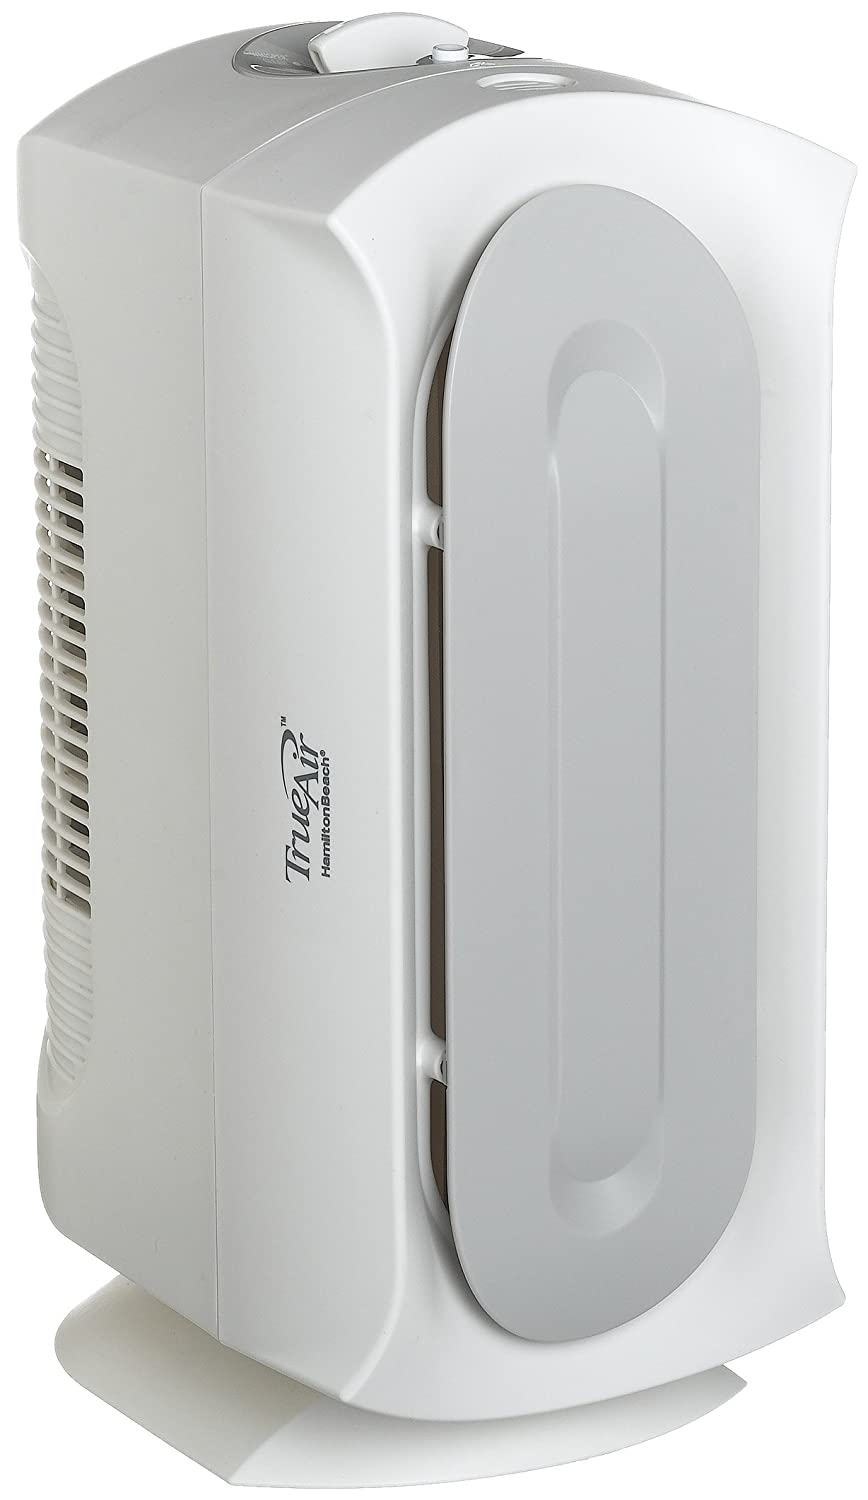 Hamilton Beach 04383 True Air Allergen-Reducing Air Cleaner, White, $39.00